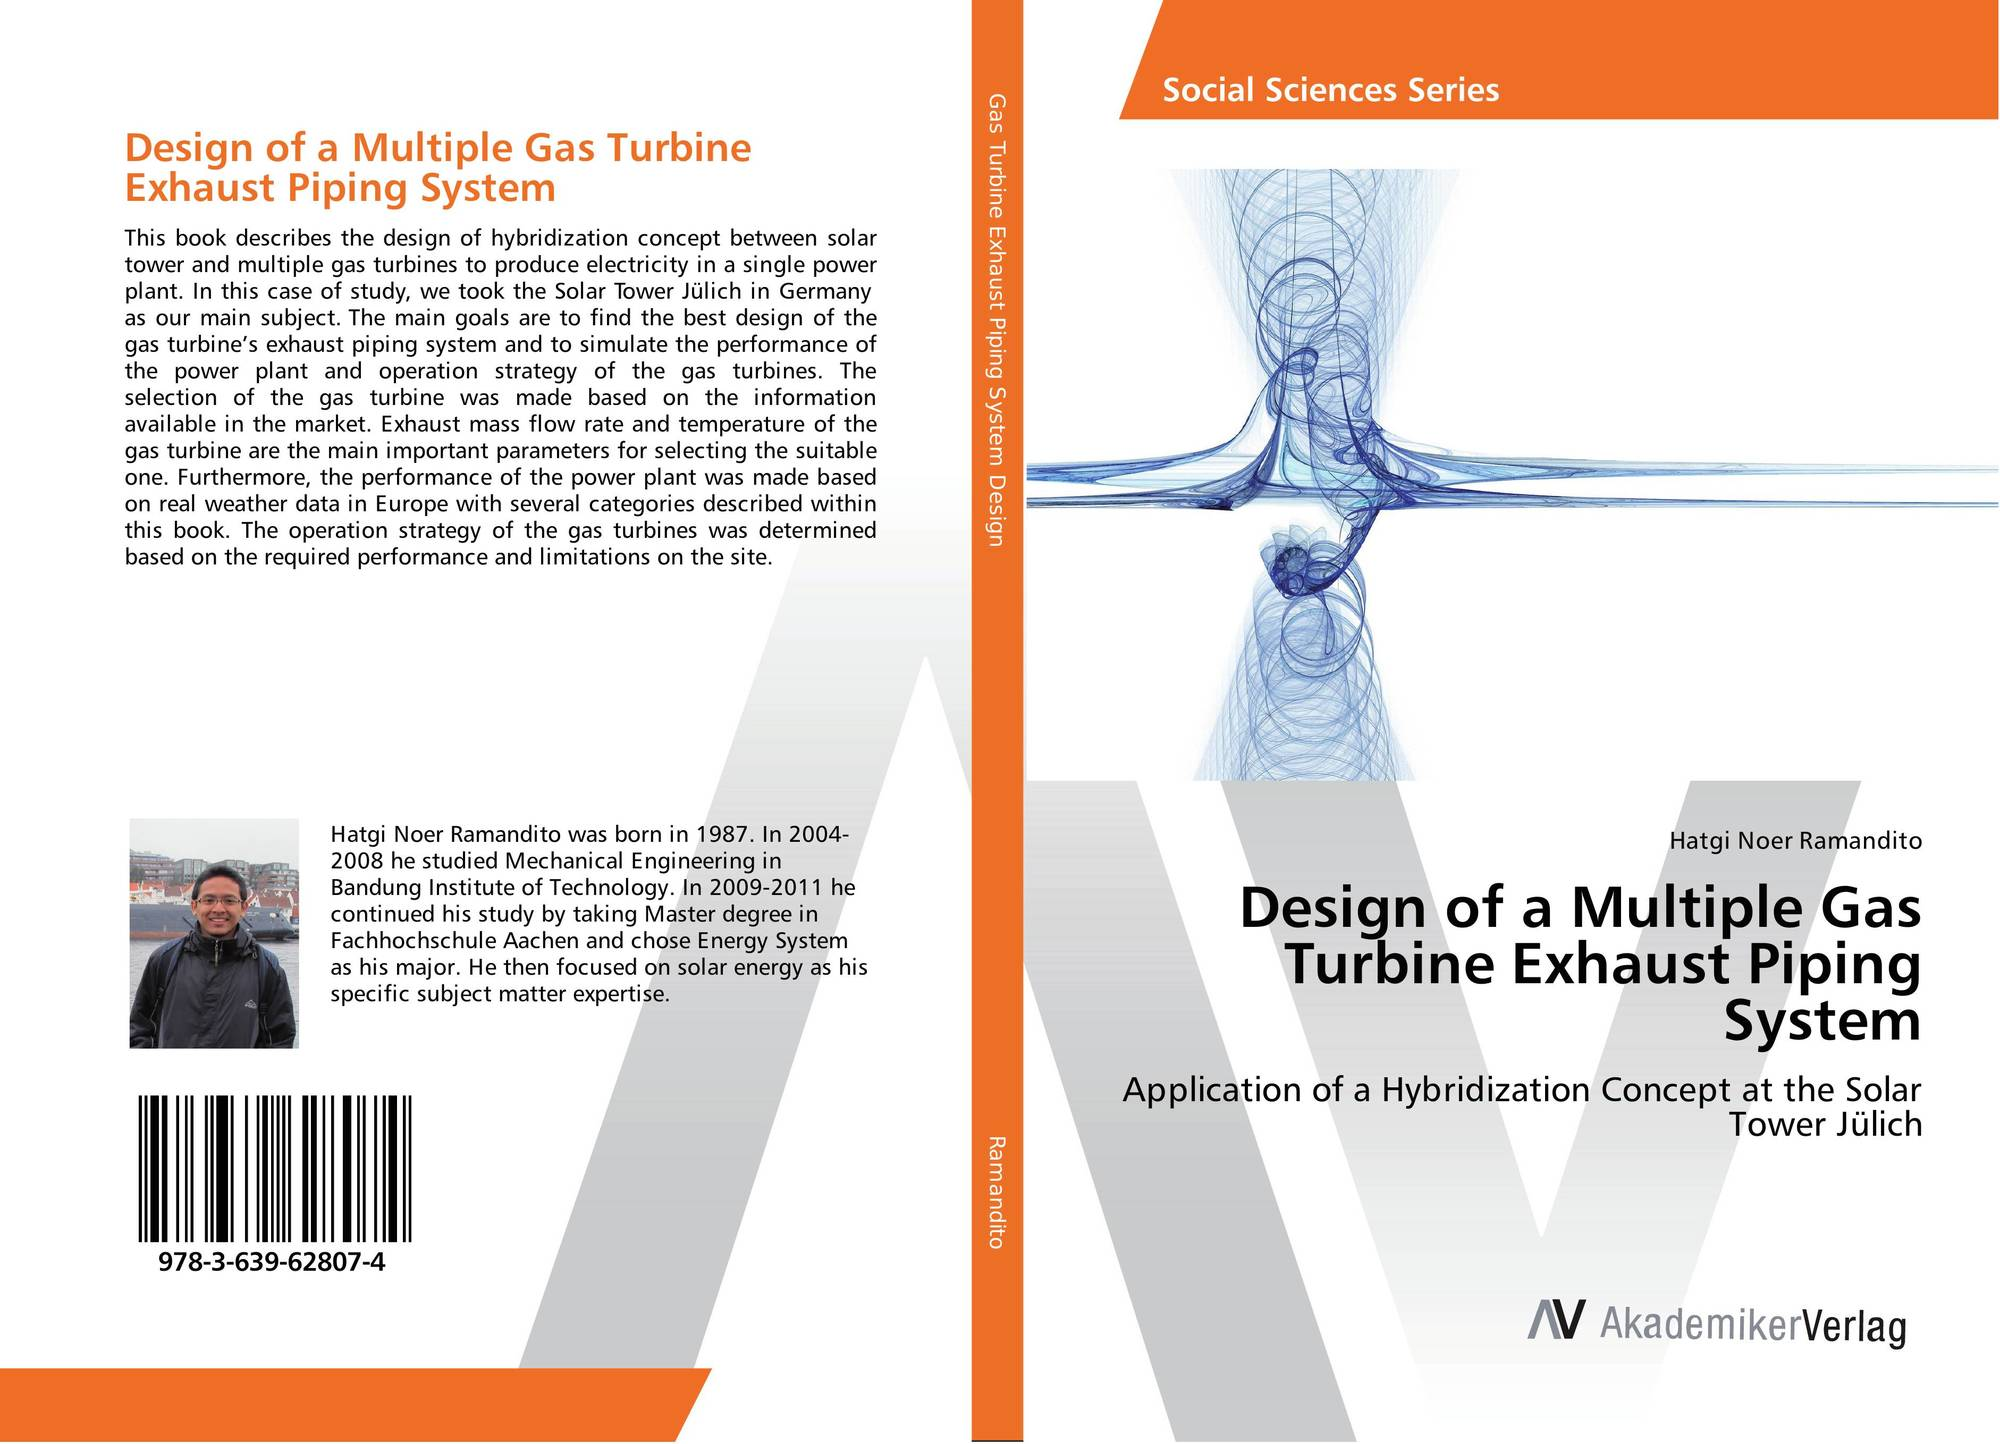 Design of a Multiple Gas Turbine Exhaust Piping System 978 3 639